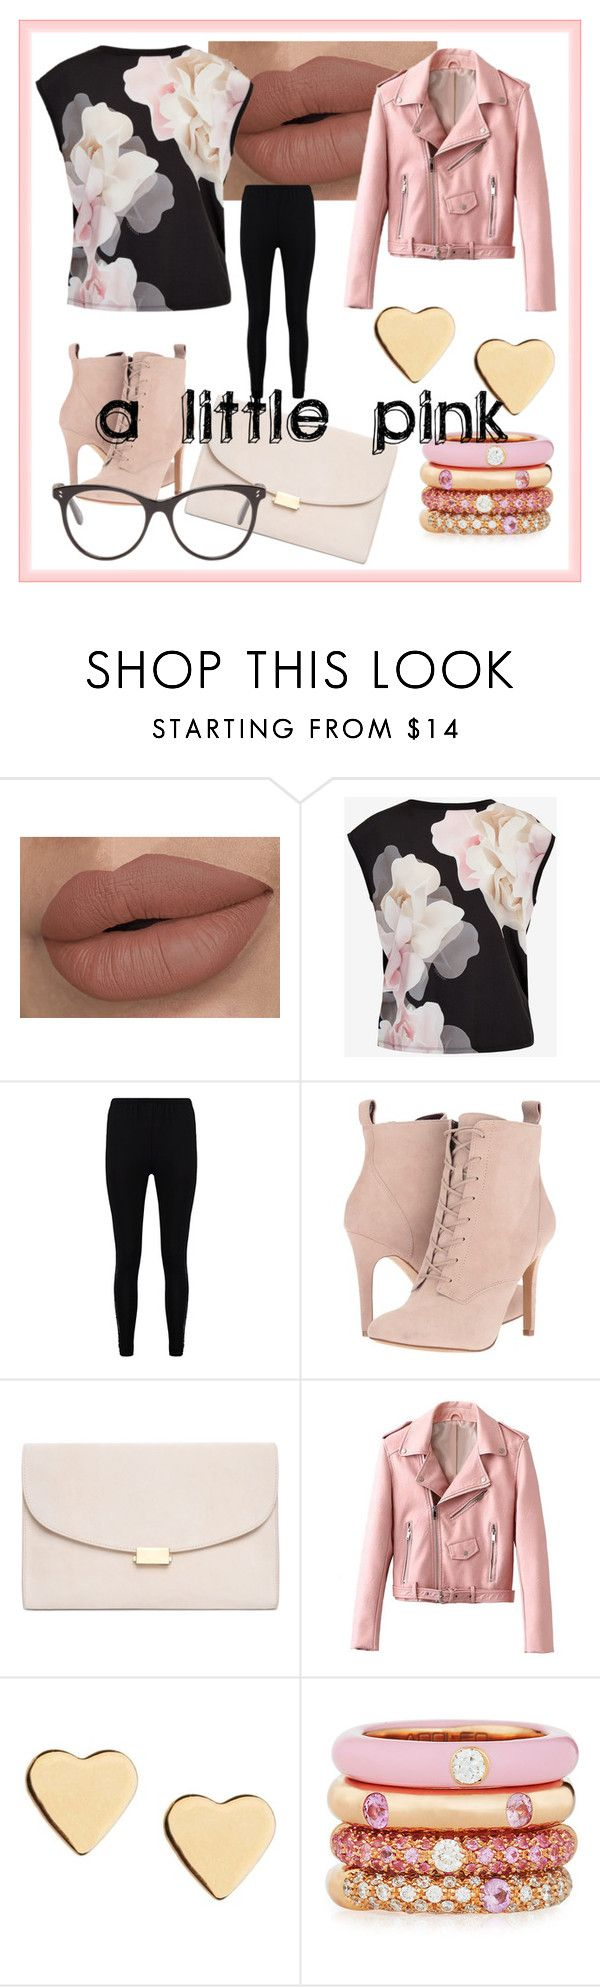 Untitled #216 by frupapp on Polyvore featuring Ted Baker, Boohoo, BCBGeneration, Mansur Gavriel, Adolfo Courrier, Lipsy and STELLA McCARTNEY